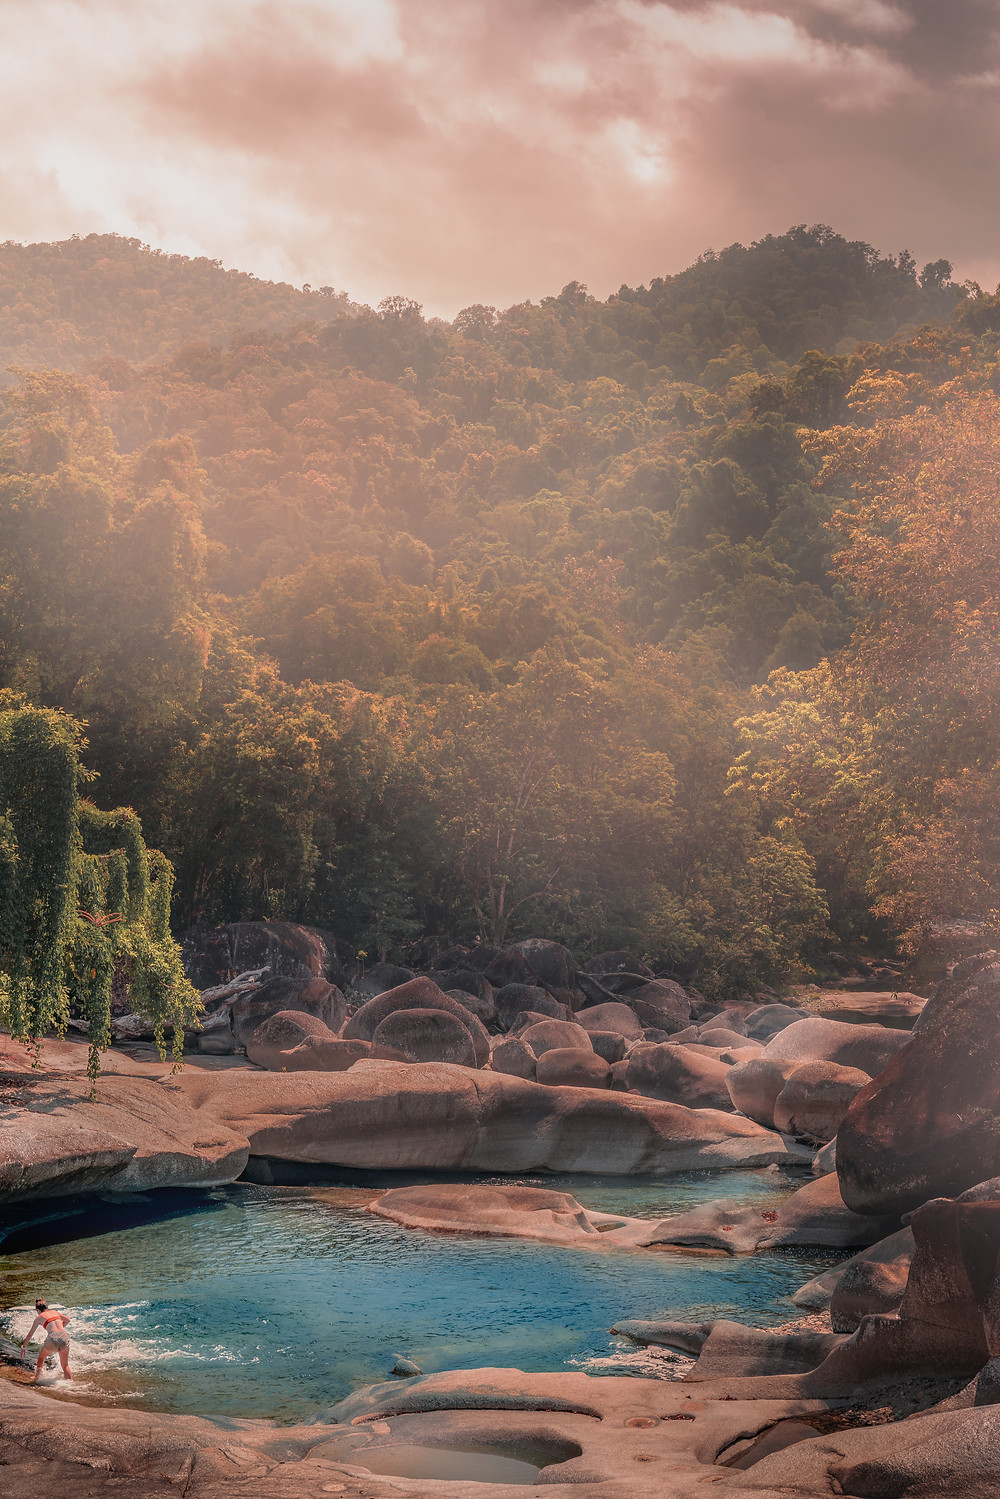 Bikini girl dipping in to the blue water of babinda boulders on a hot summer day